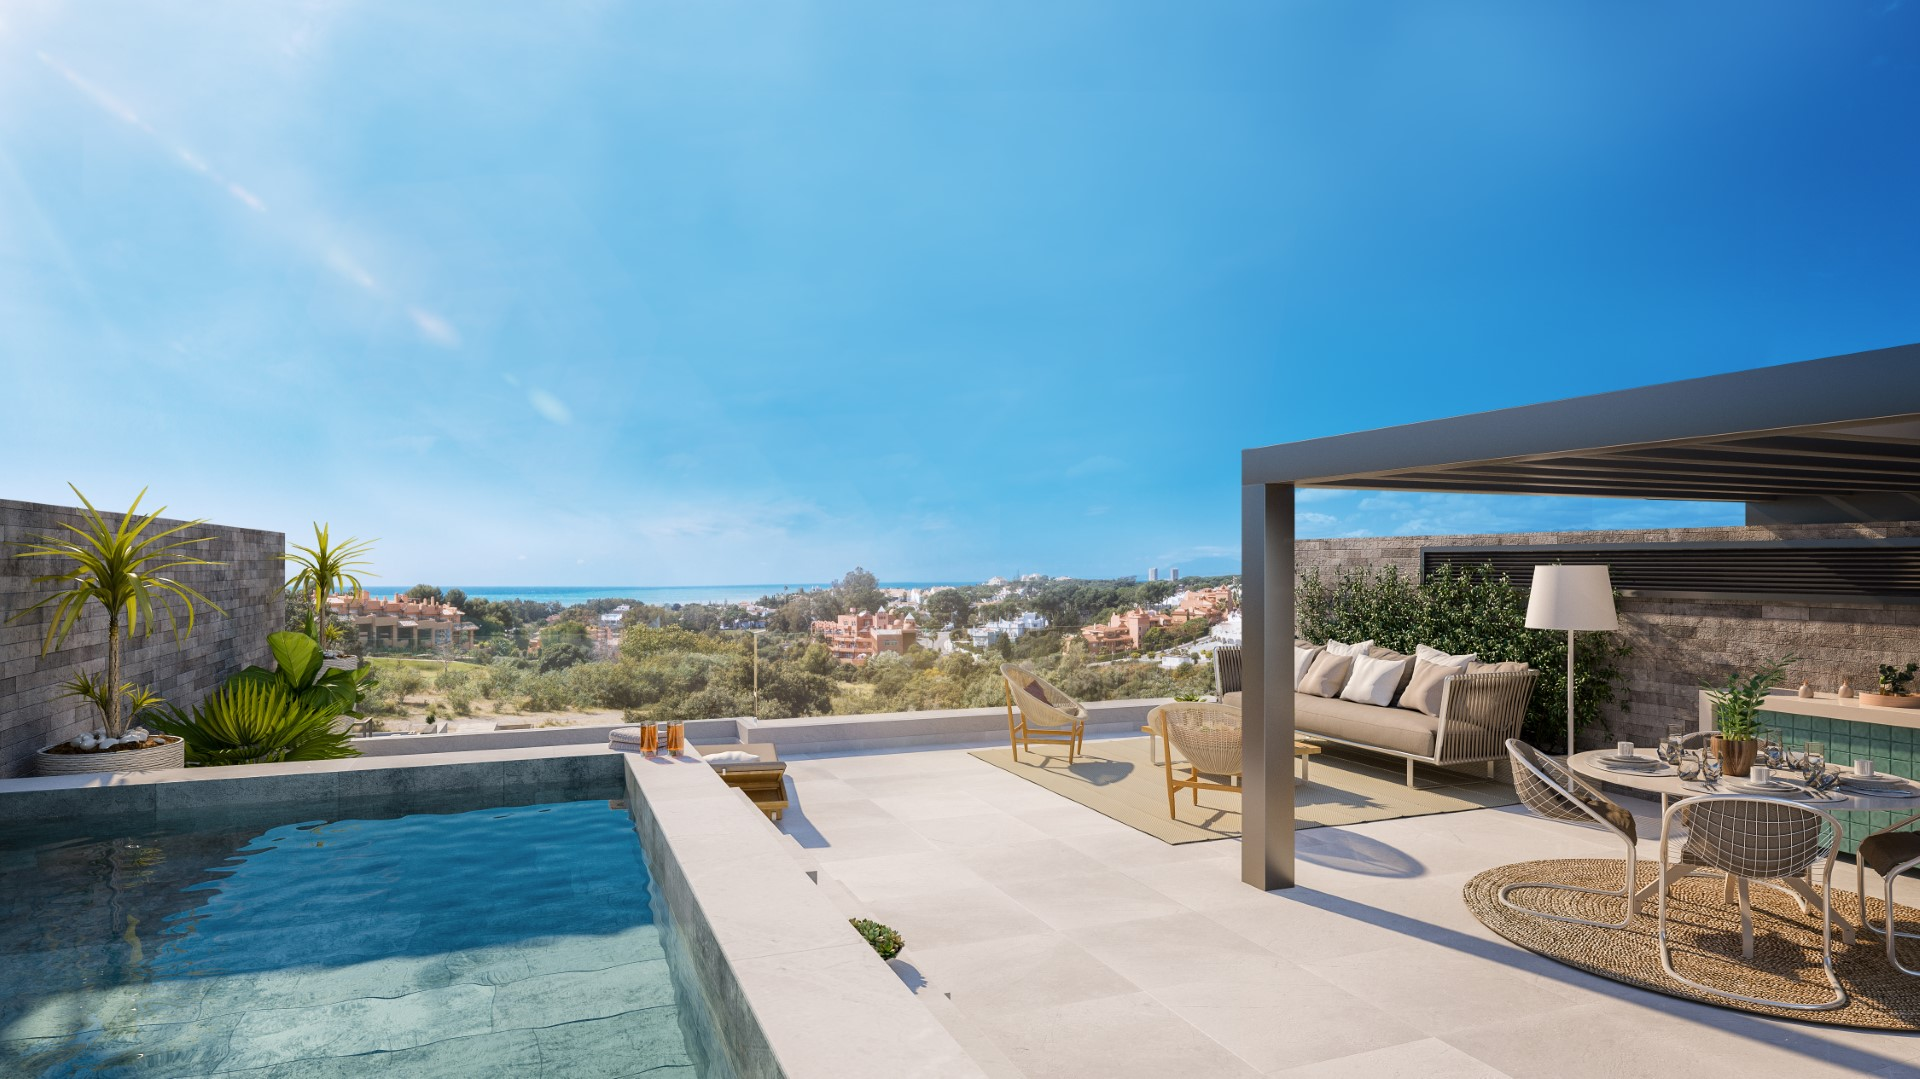 Apartments for sale in Marbella R3419713